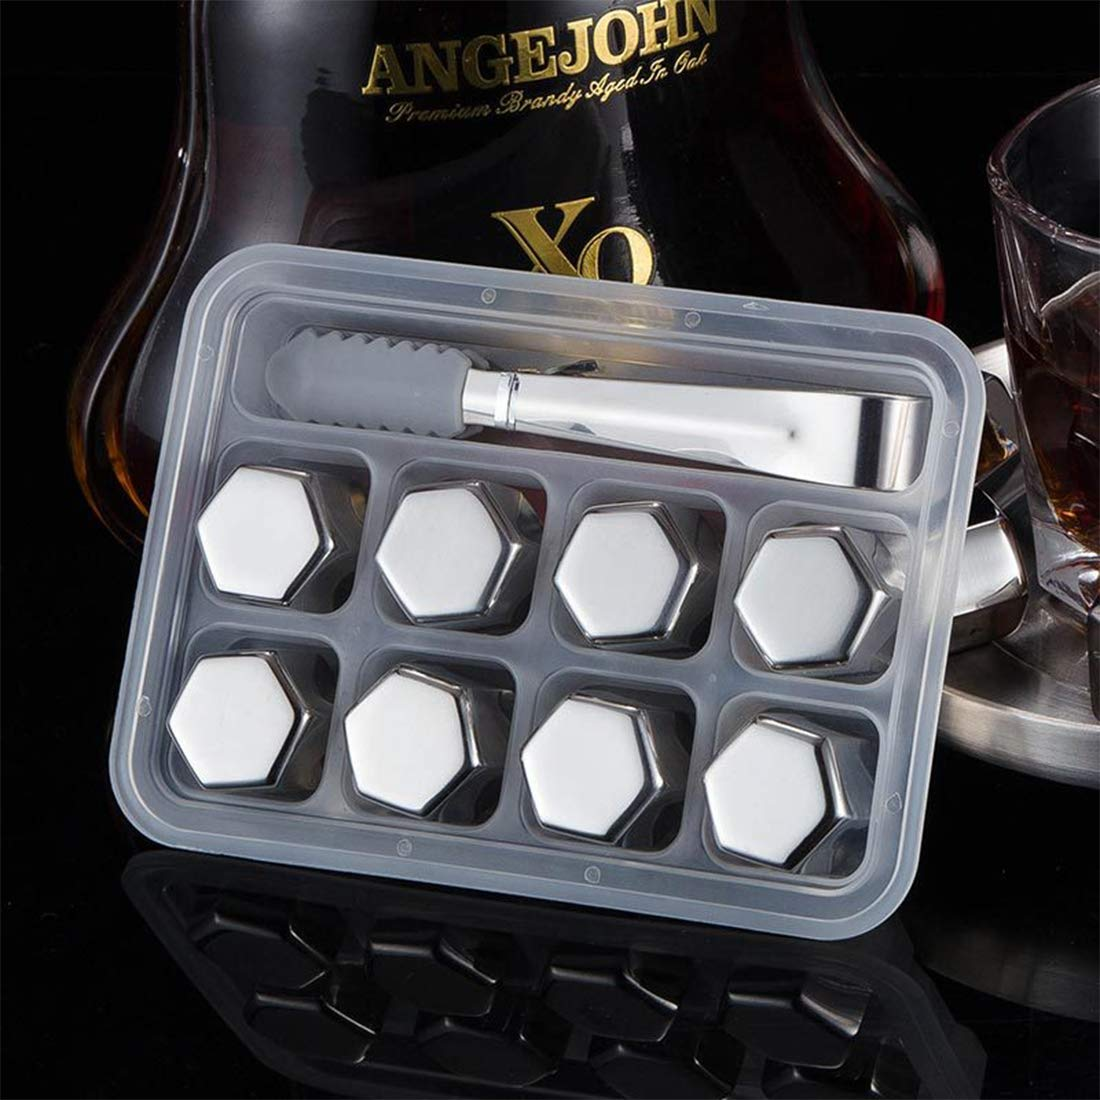 SONGYANG Ice Cube Reusable Stainless Steel Ice Cubes Set of 8 Drinks Stones with Tongs for Cooking Whiskey, Vodka, Wine, Beer, Beverage,All Drinks(Hexagonal),8pcs by SONGYANG